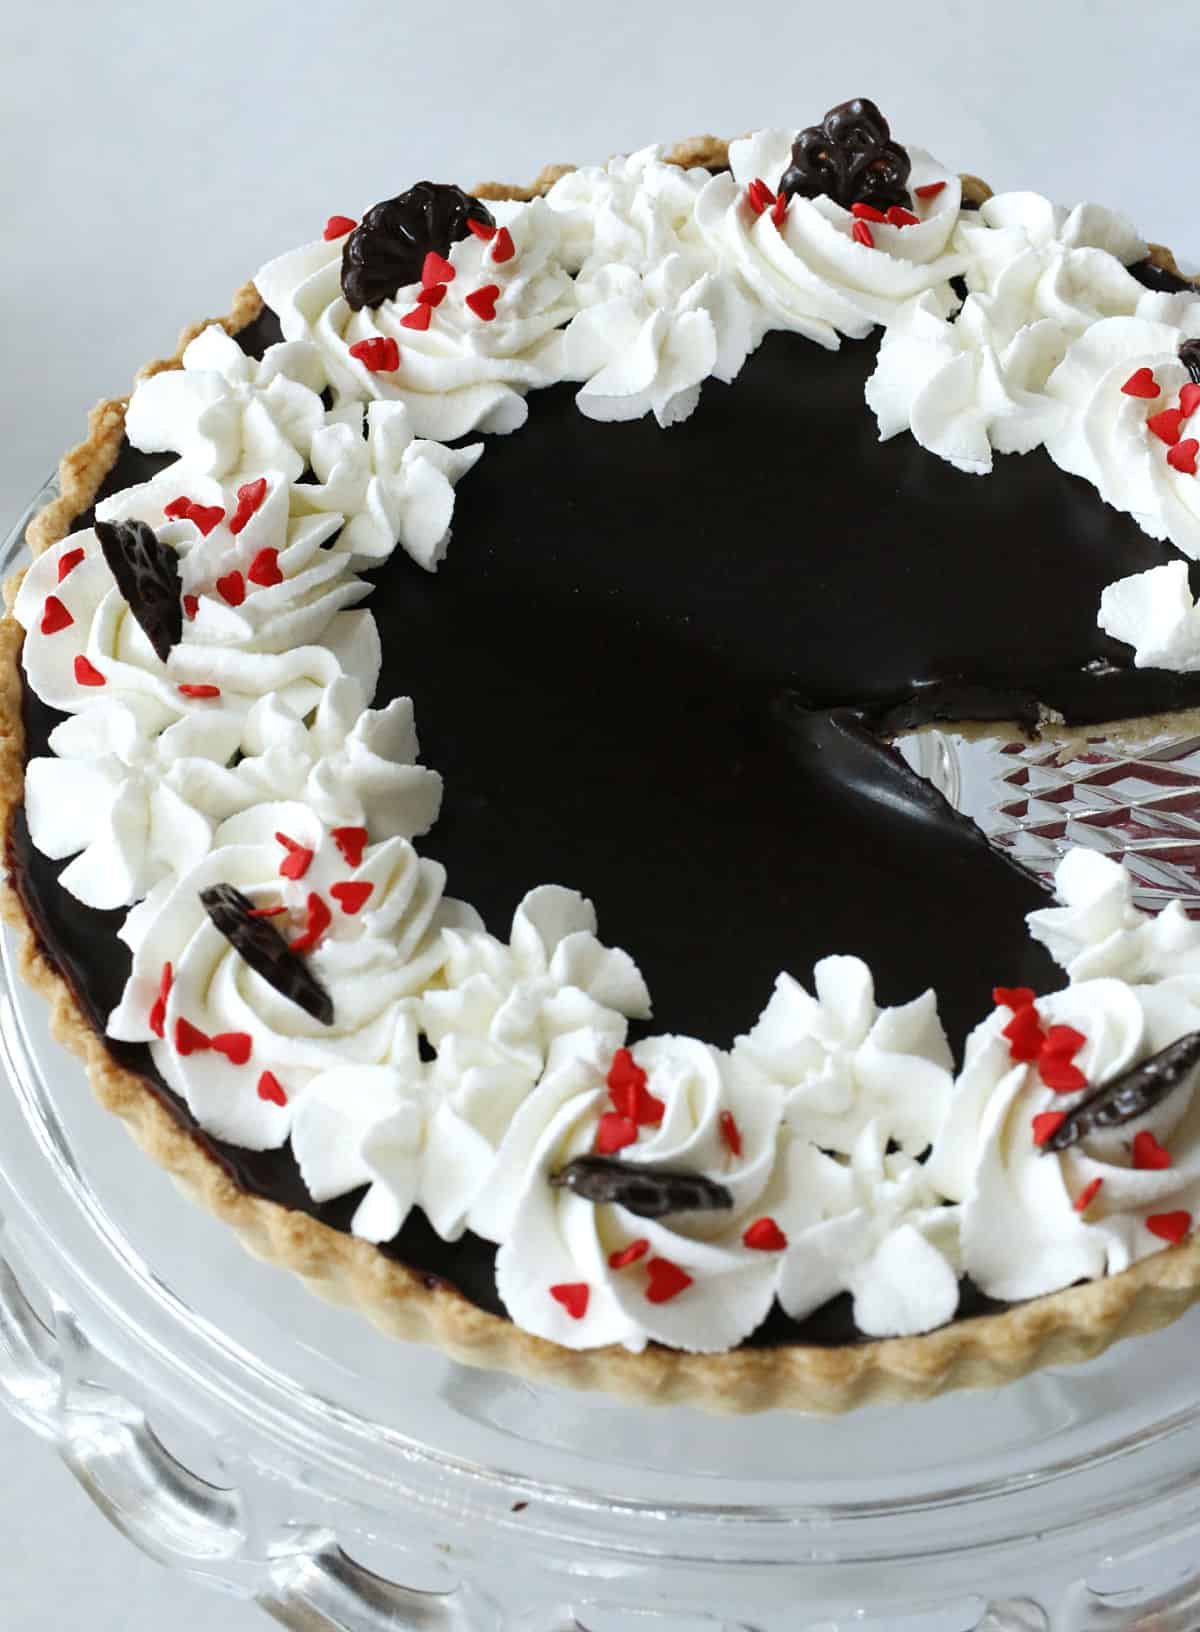 a chocolate tart with whipped cream and candy red hearts